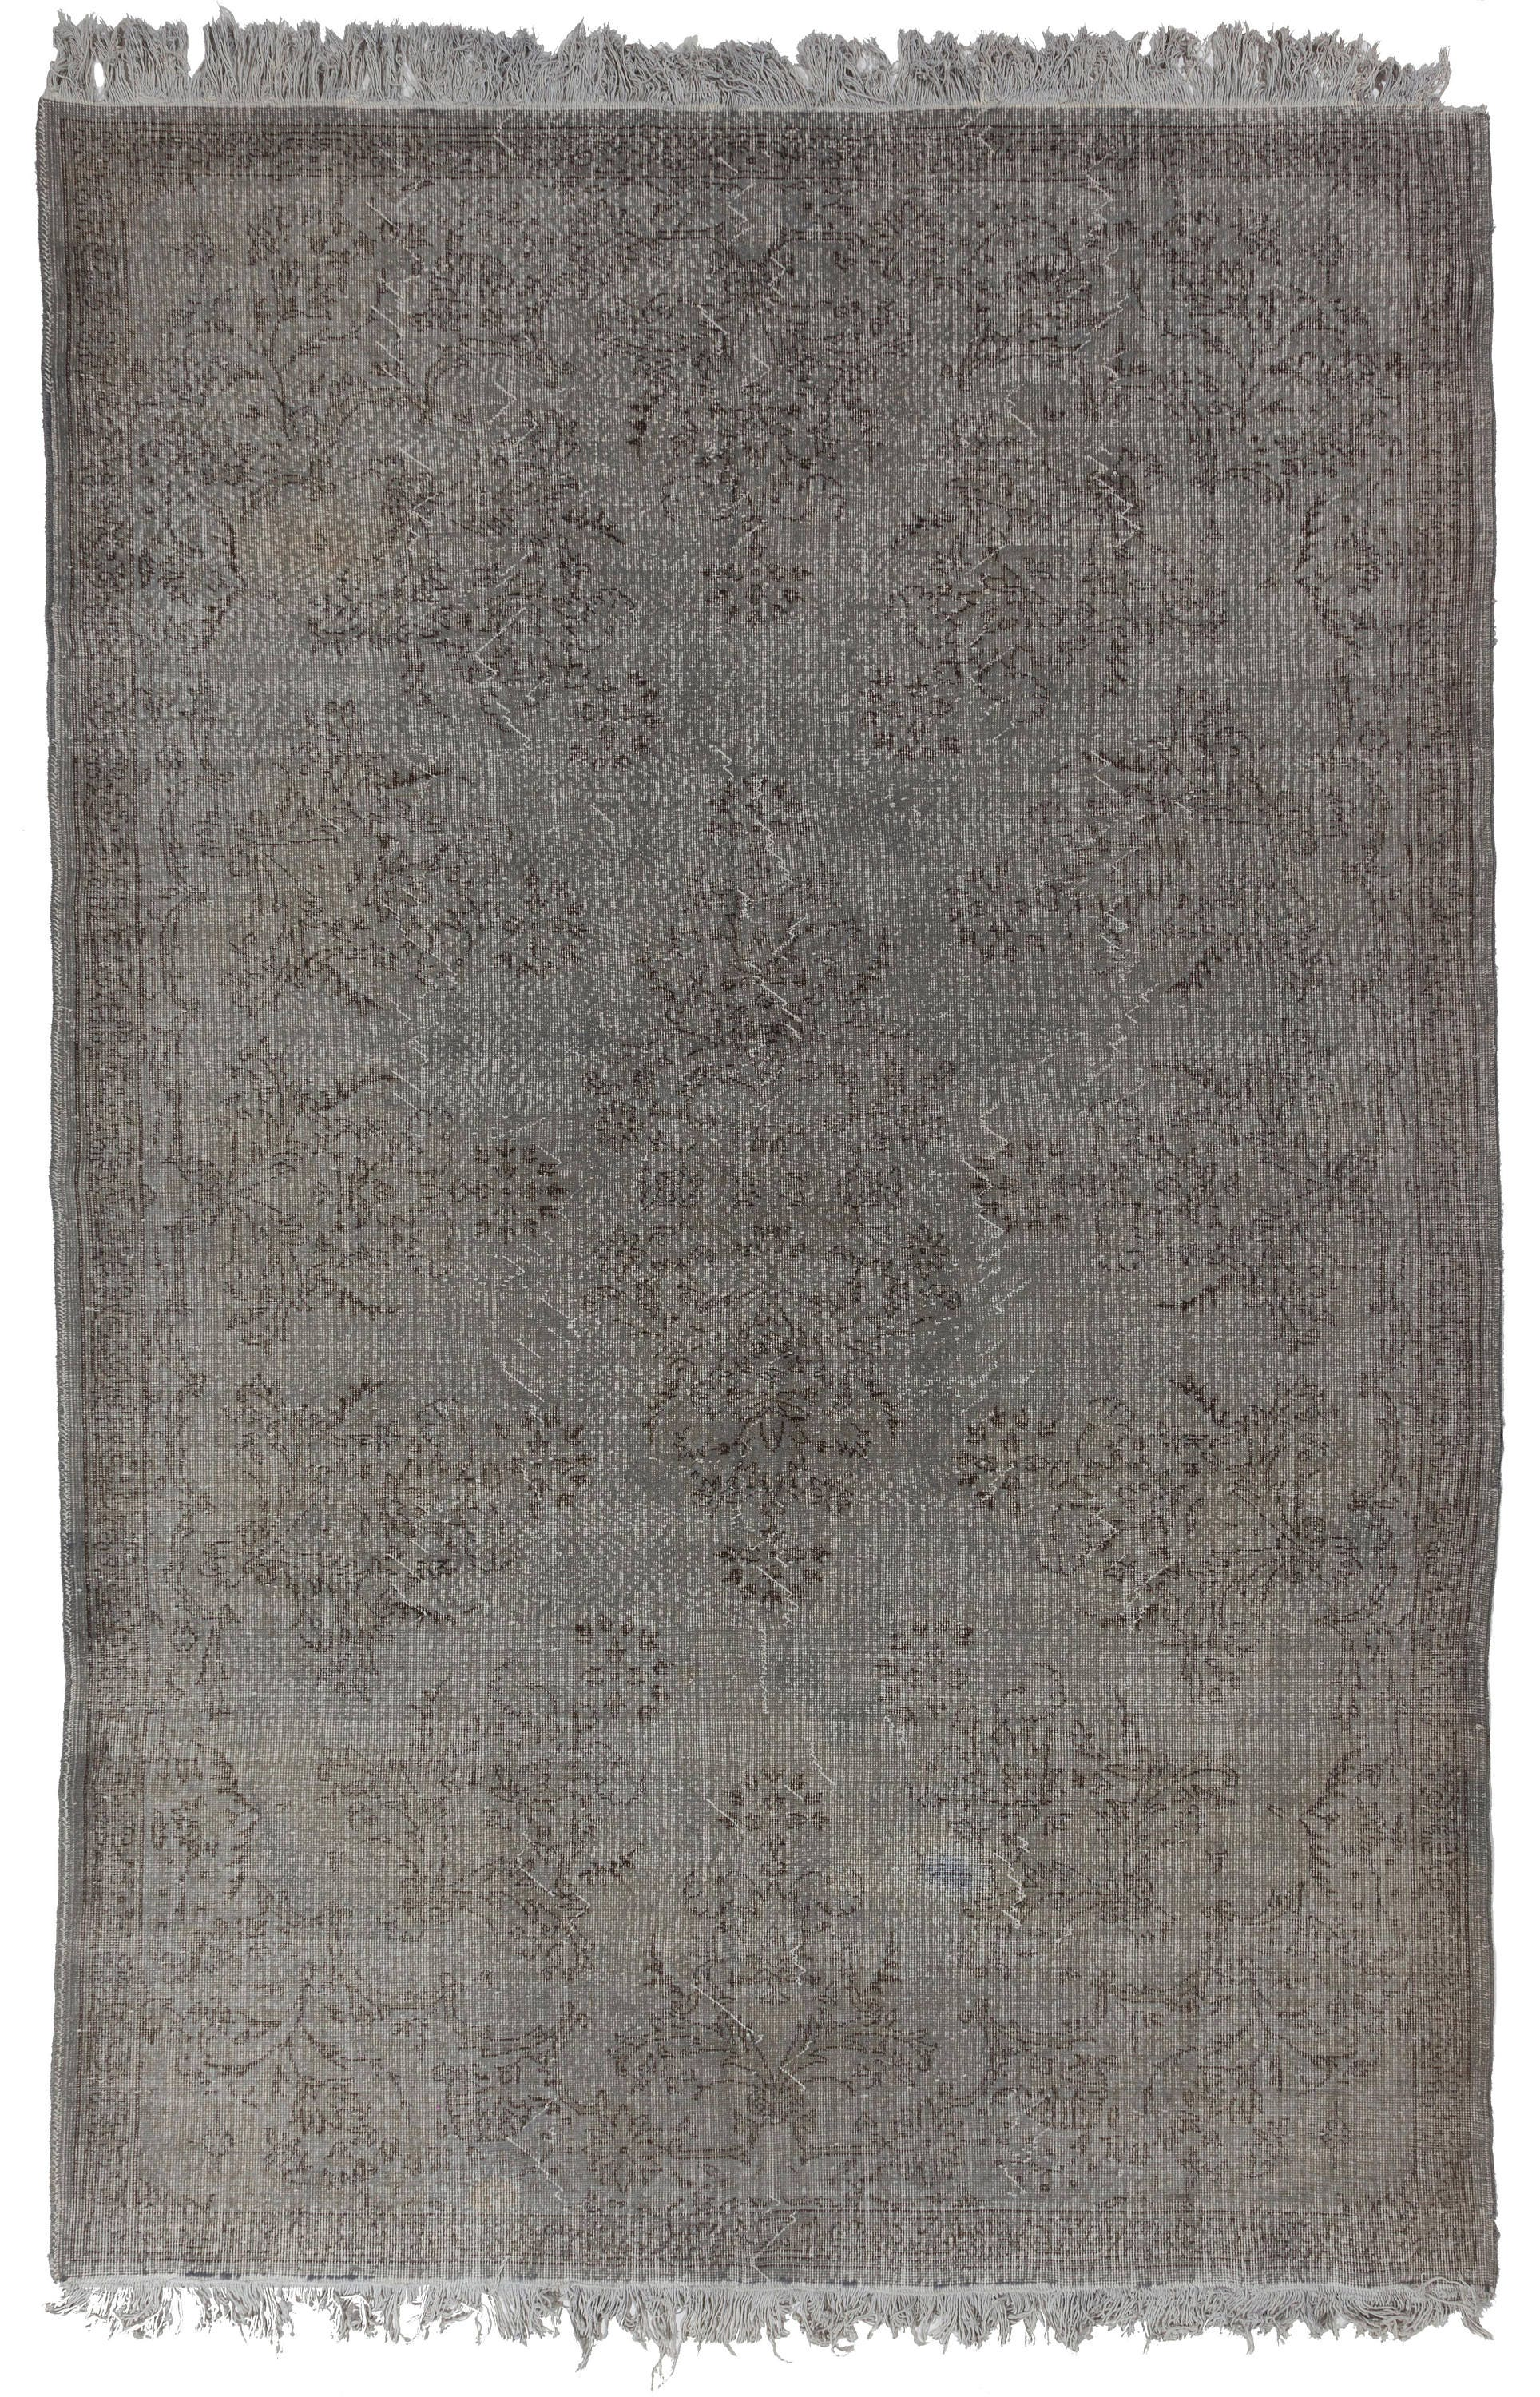 grey brown striped rug wool amp beige htm design serali light share